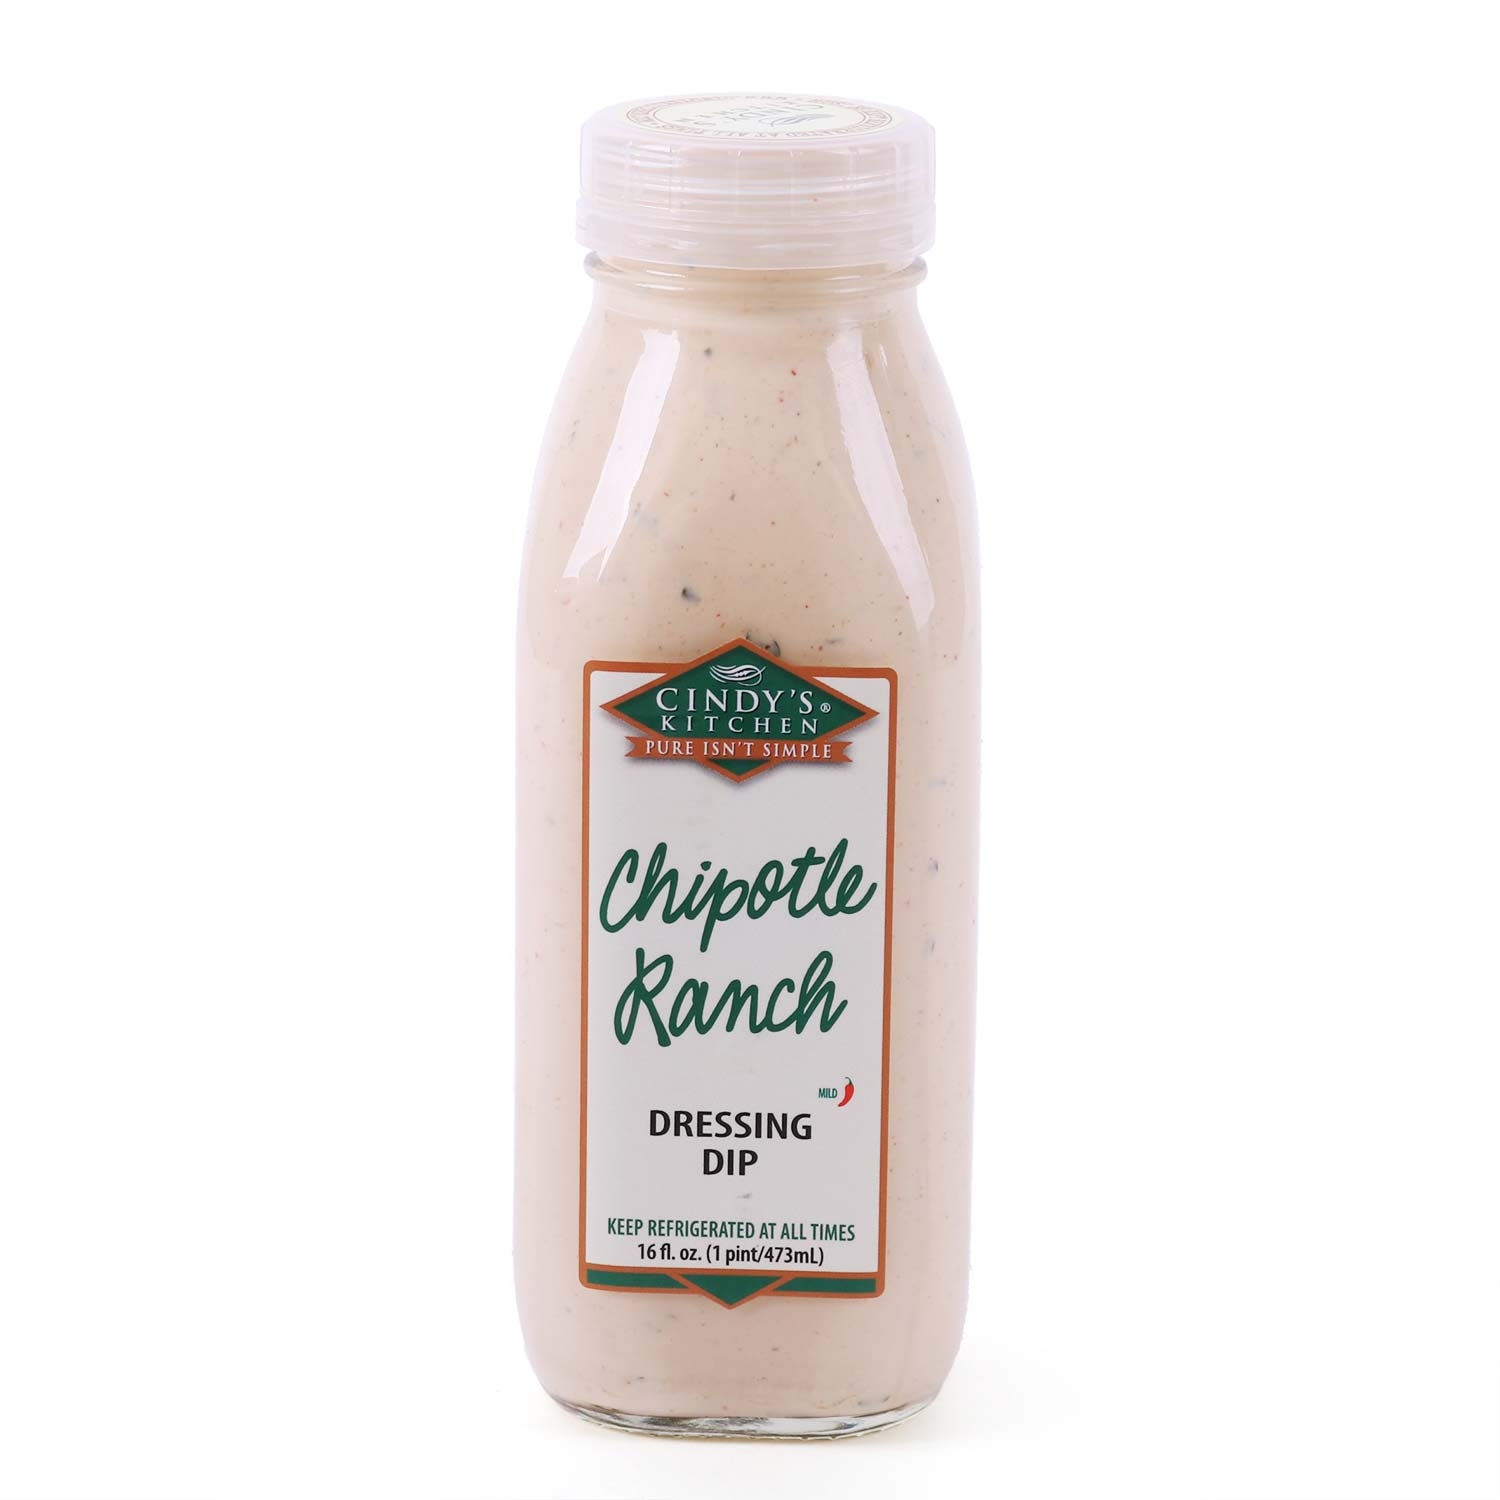 Dressing, Chipotle Ranch